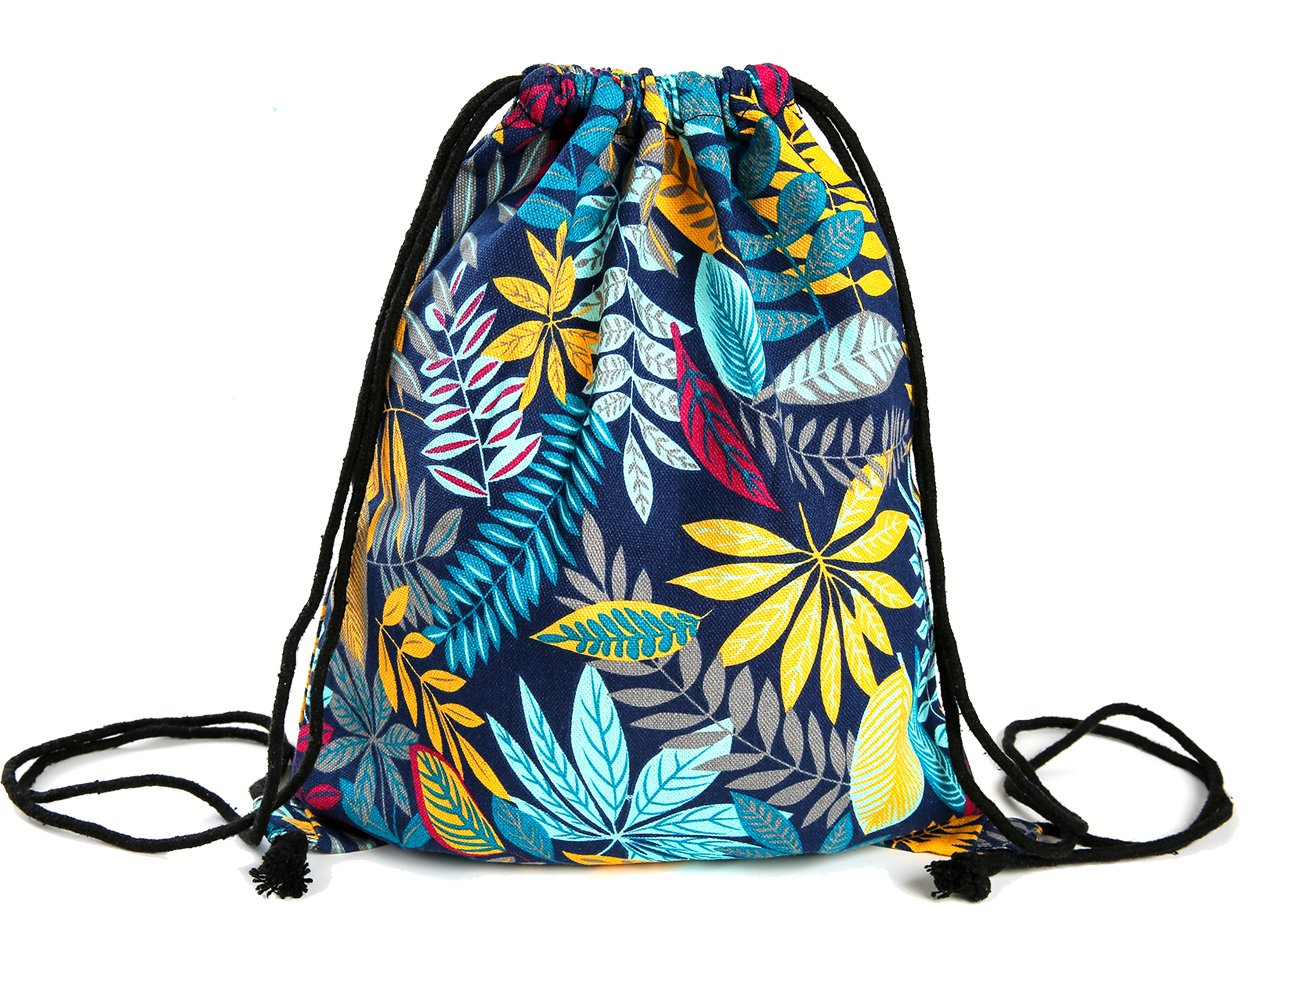 iSuperb Canvas Drawstring Backpack bag Gym Sack bag Stylish Lightweight Cute for Excursion Outdoor (Owl) 10471217